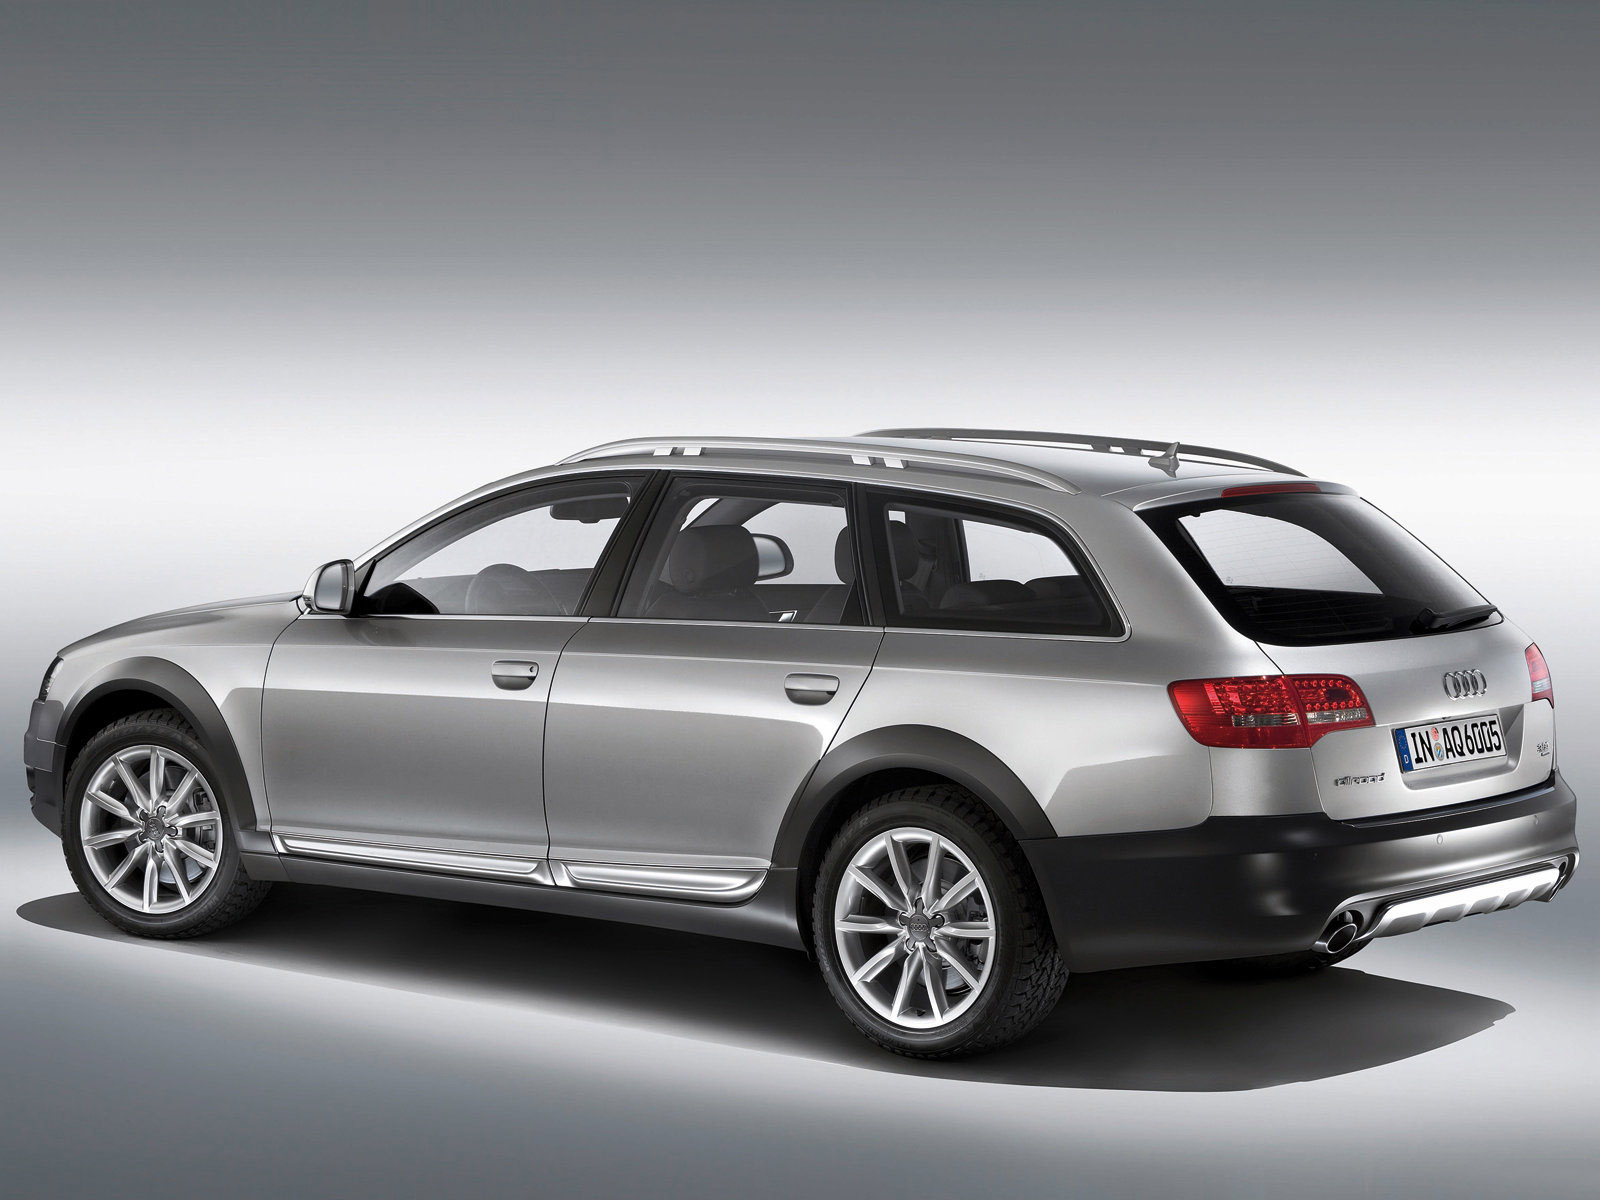 audi a6 allroad quattro 2009 audi a6 allroad quattro 2009 photo 05 car in pictures car photo. Black Bedroom Furniture Sets. Home Design Ideas